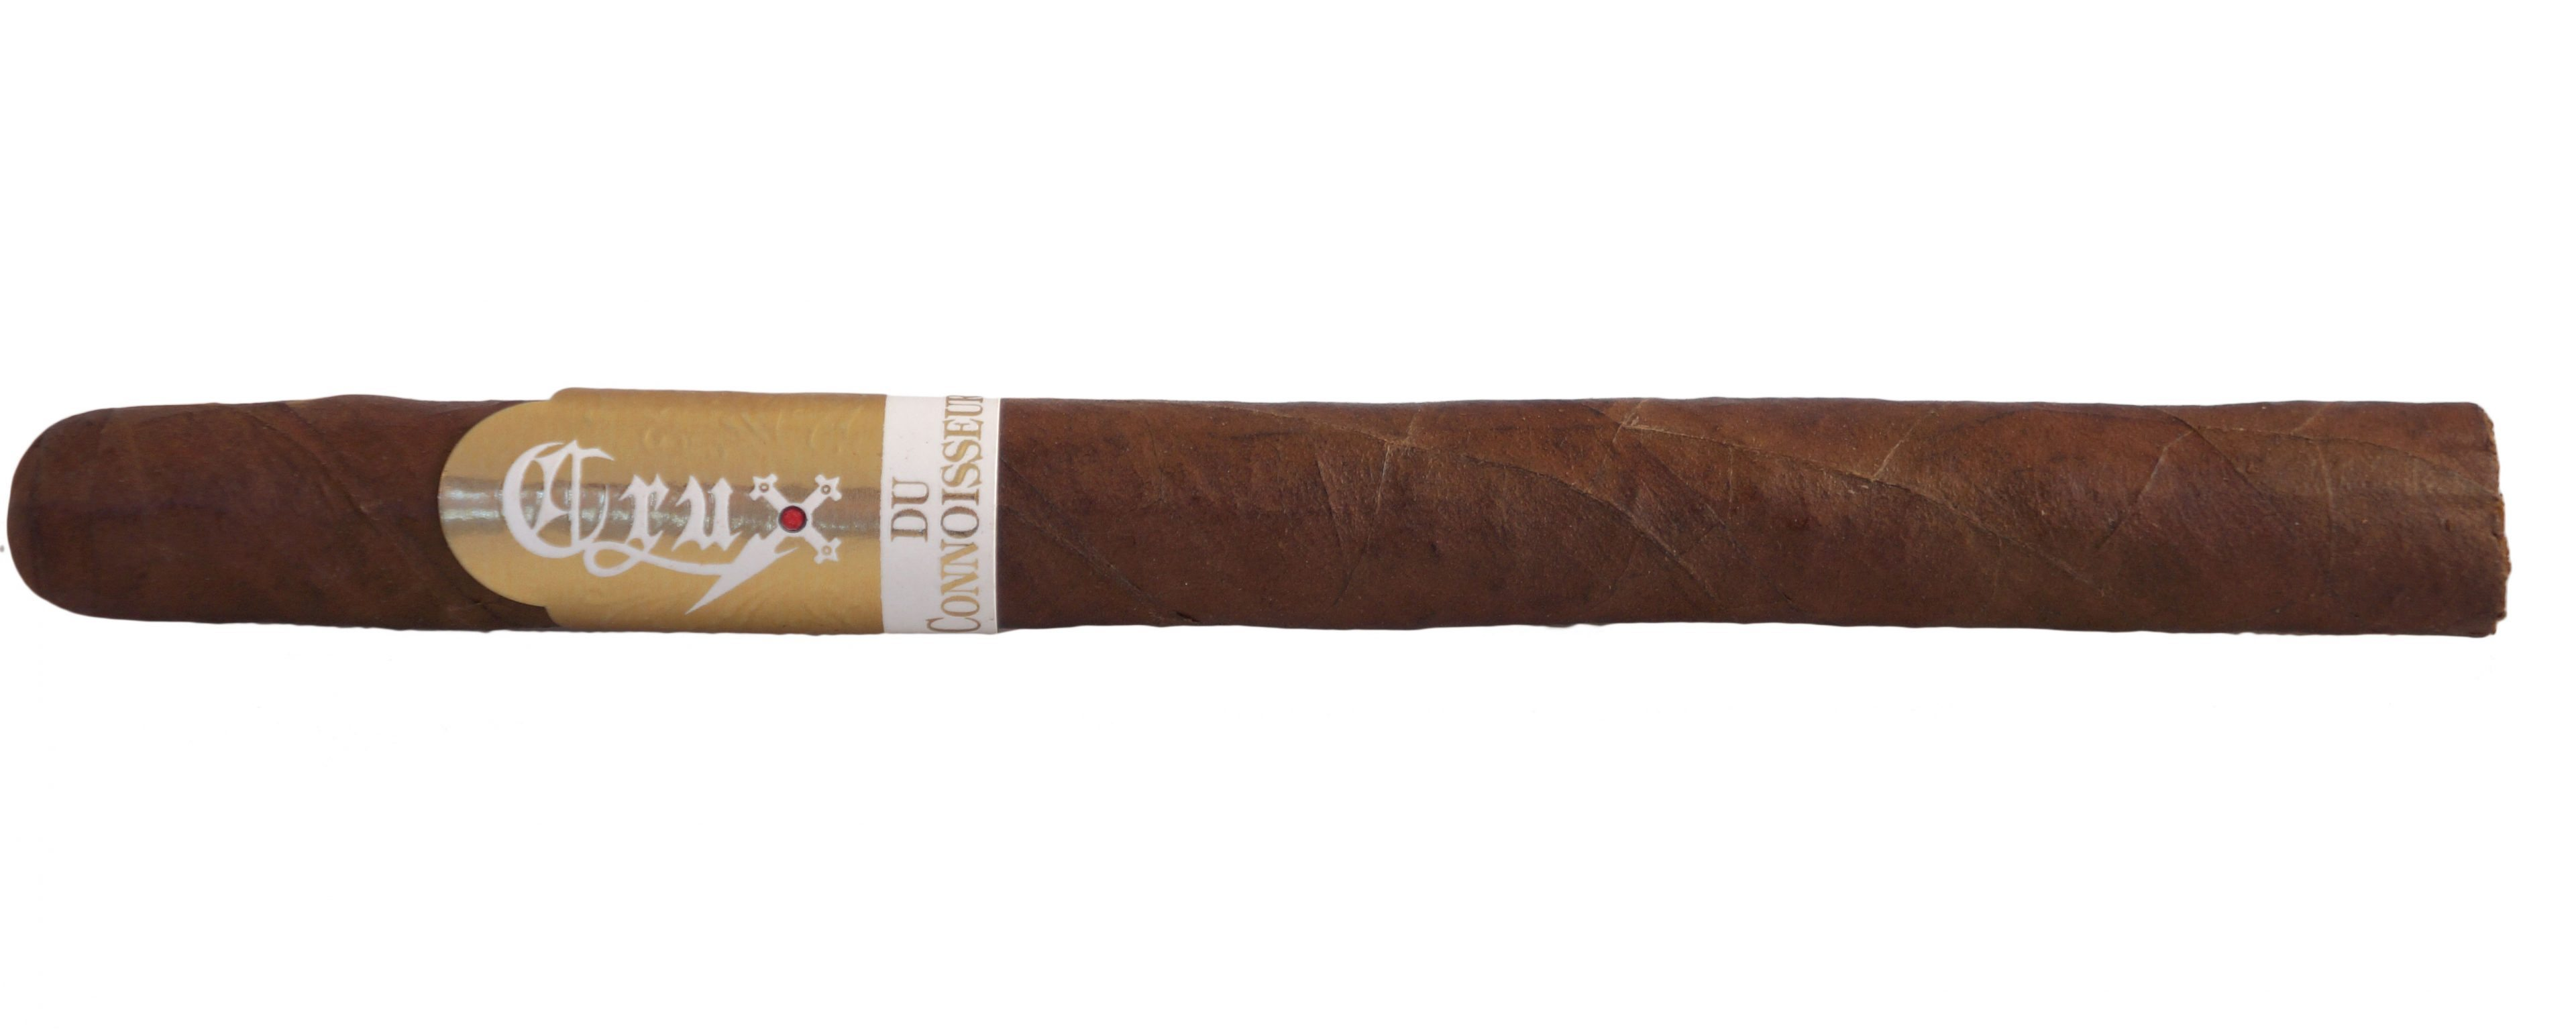 Blind Cigar Review: Crux | du Connoisseur No. 2